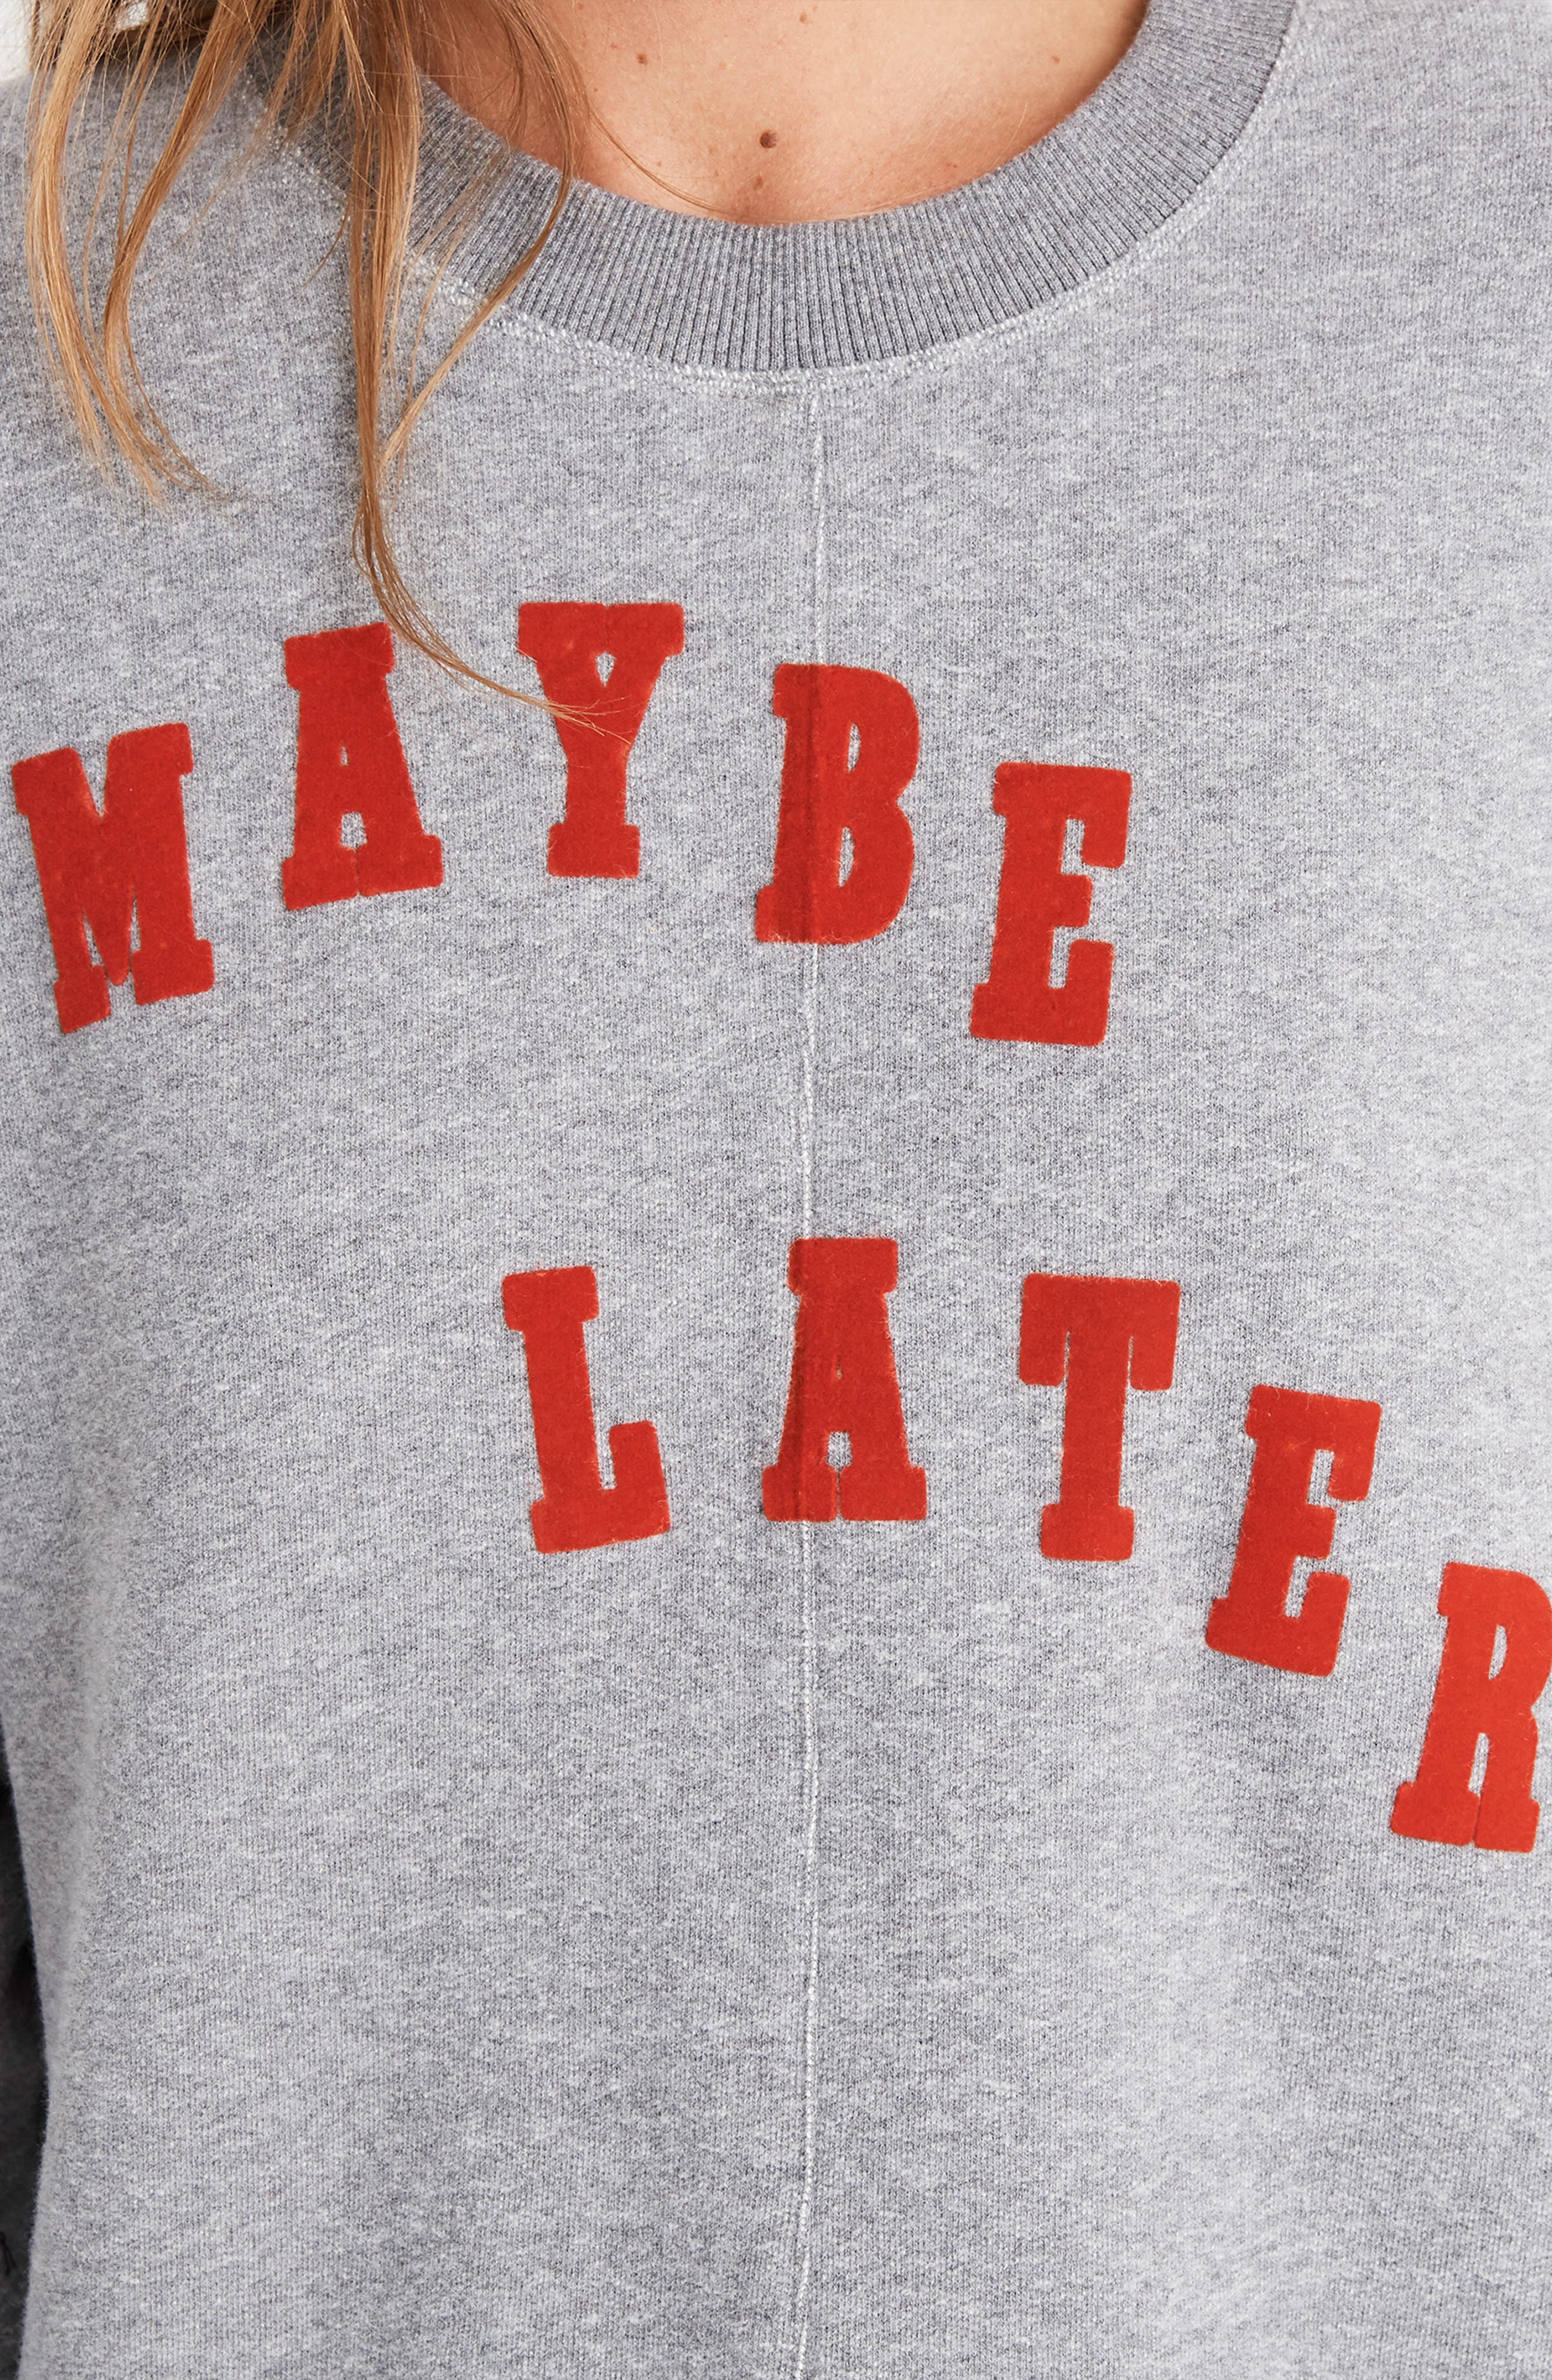 Maybe Later Mainstay Sweatshirt,                             Alternate thumbnail 4, color,                             020